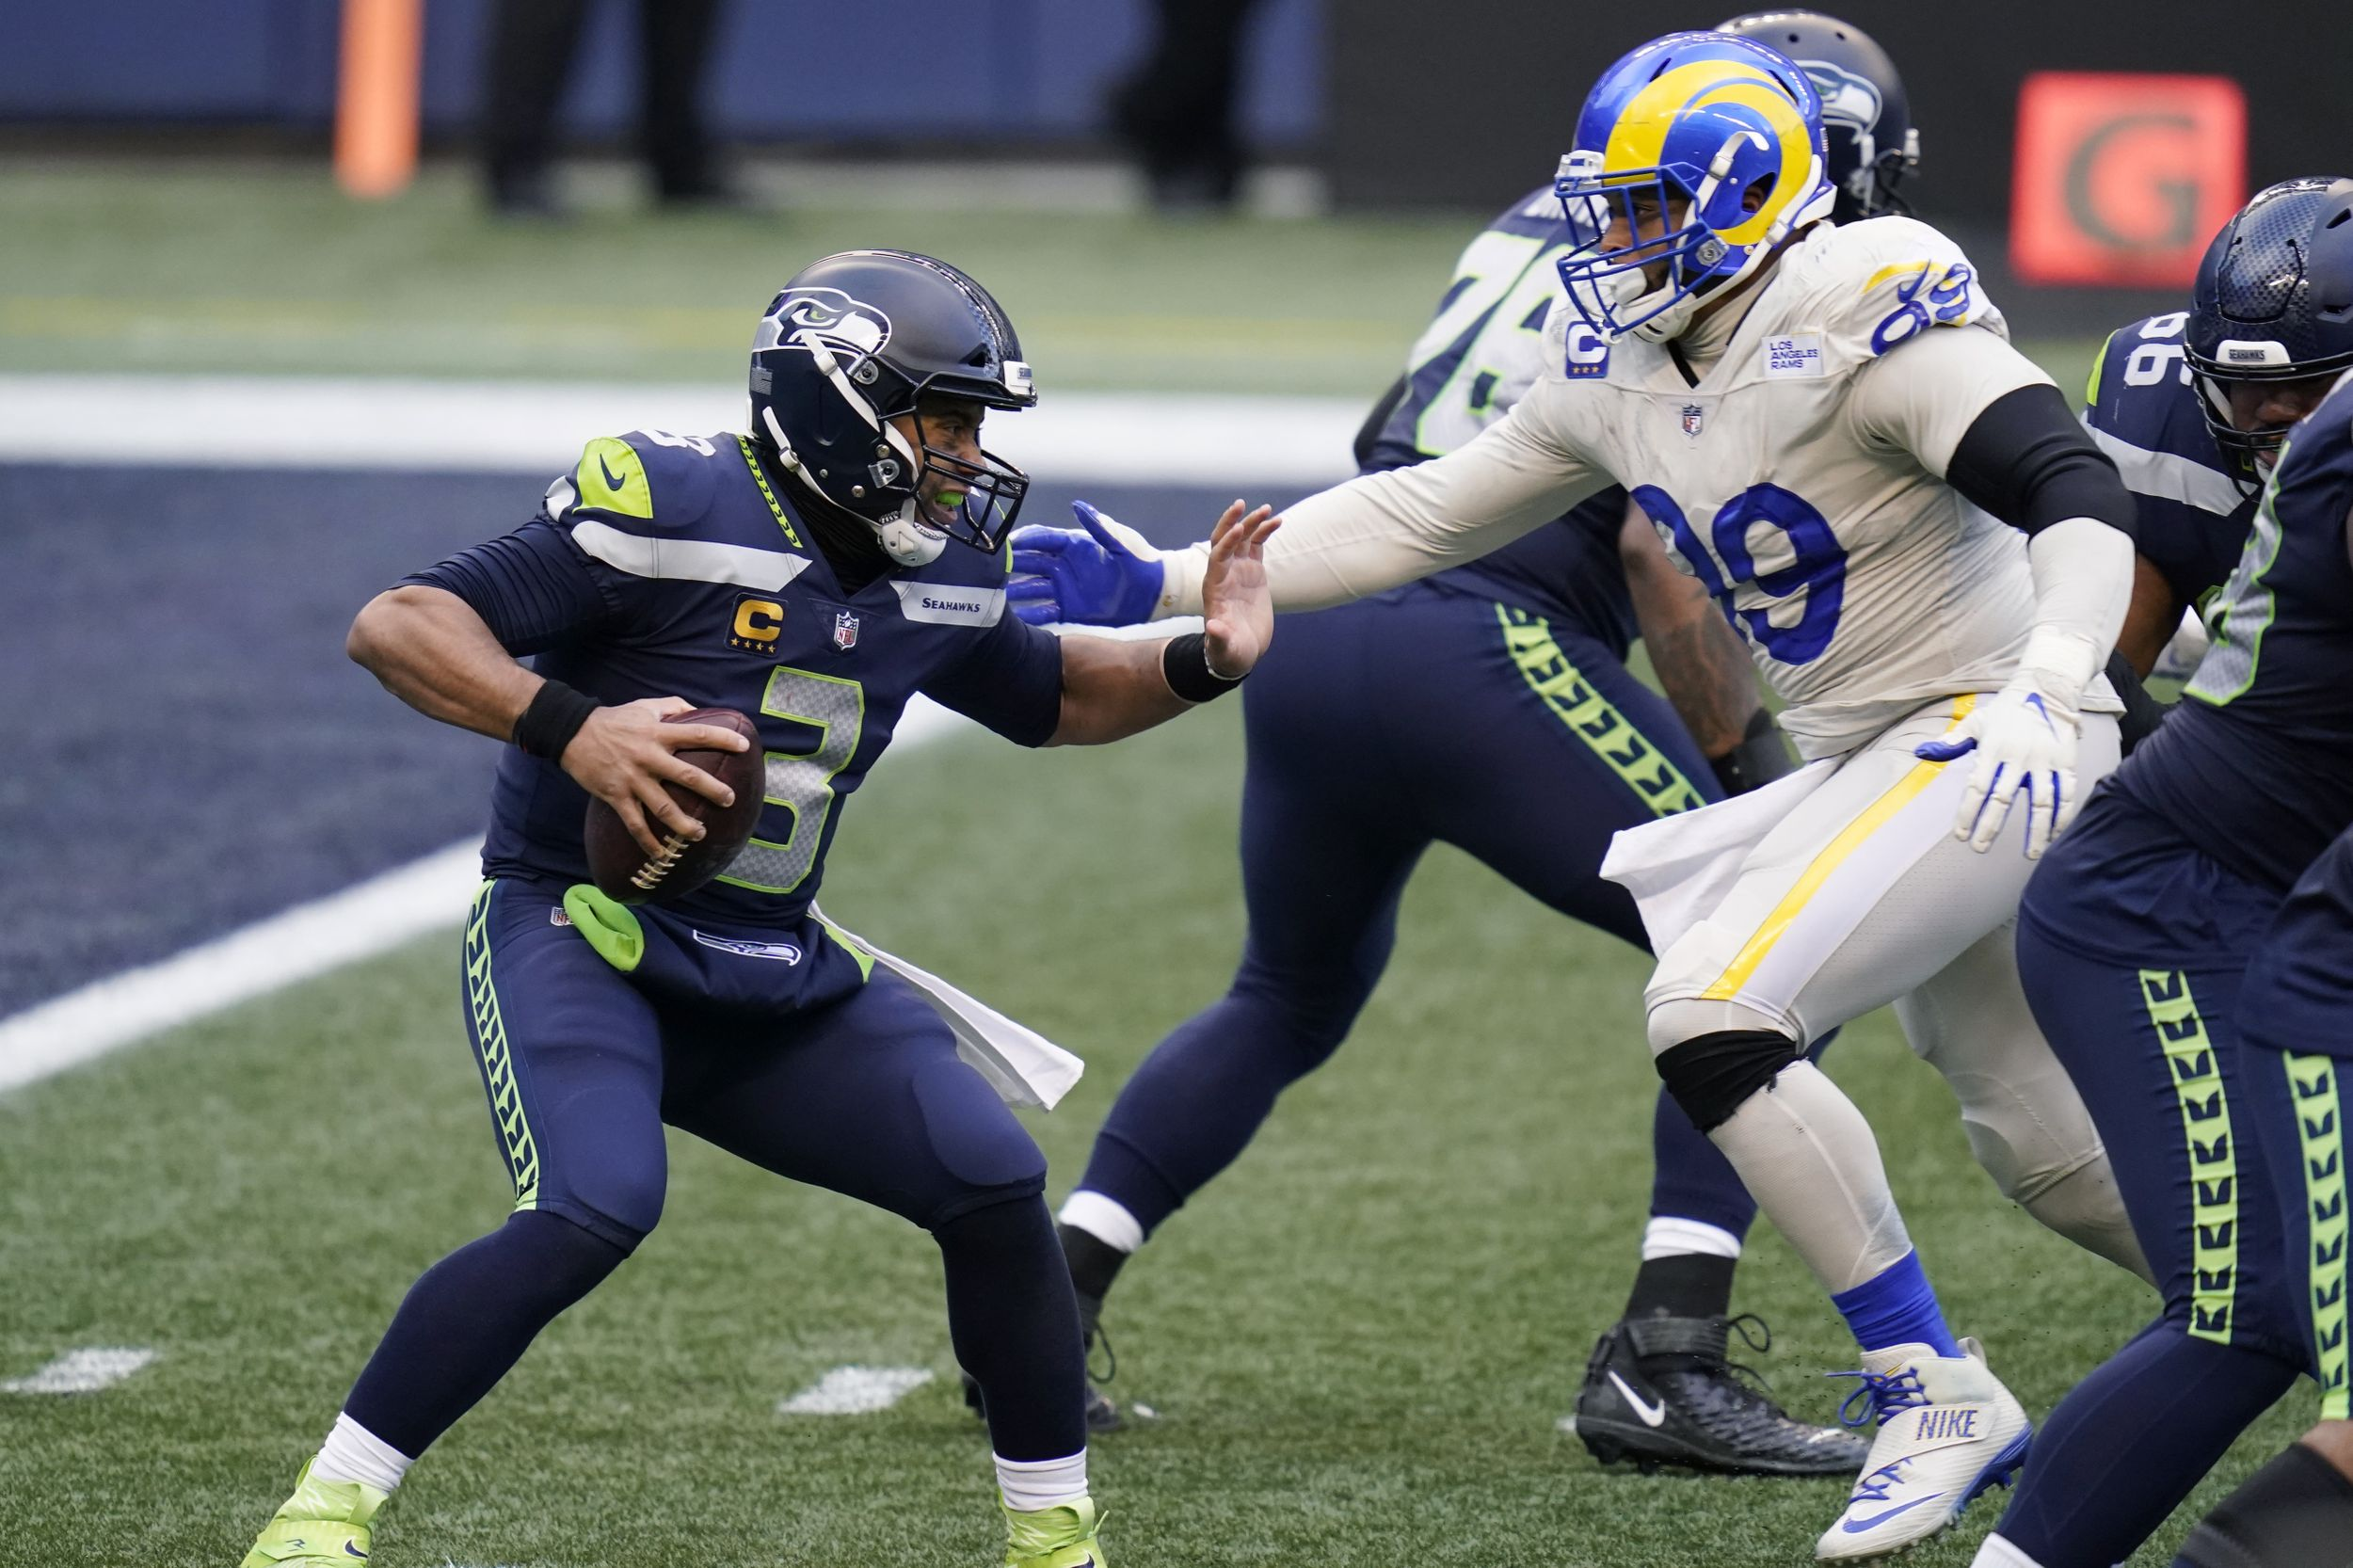 Seahawks Wrap Up Nfc West Title With 20 9 Victory Over Rams The Spokesman Review